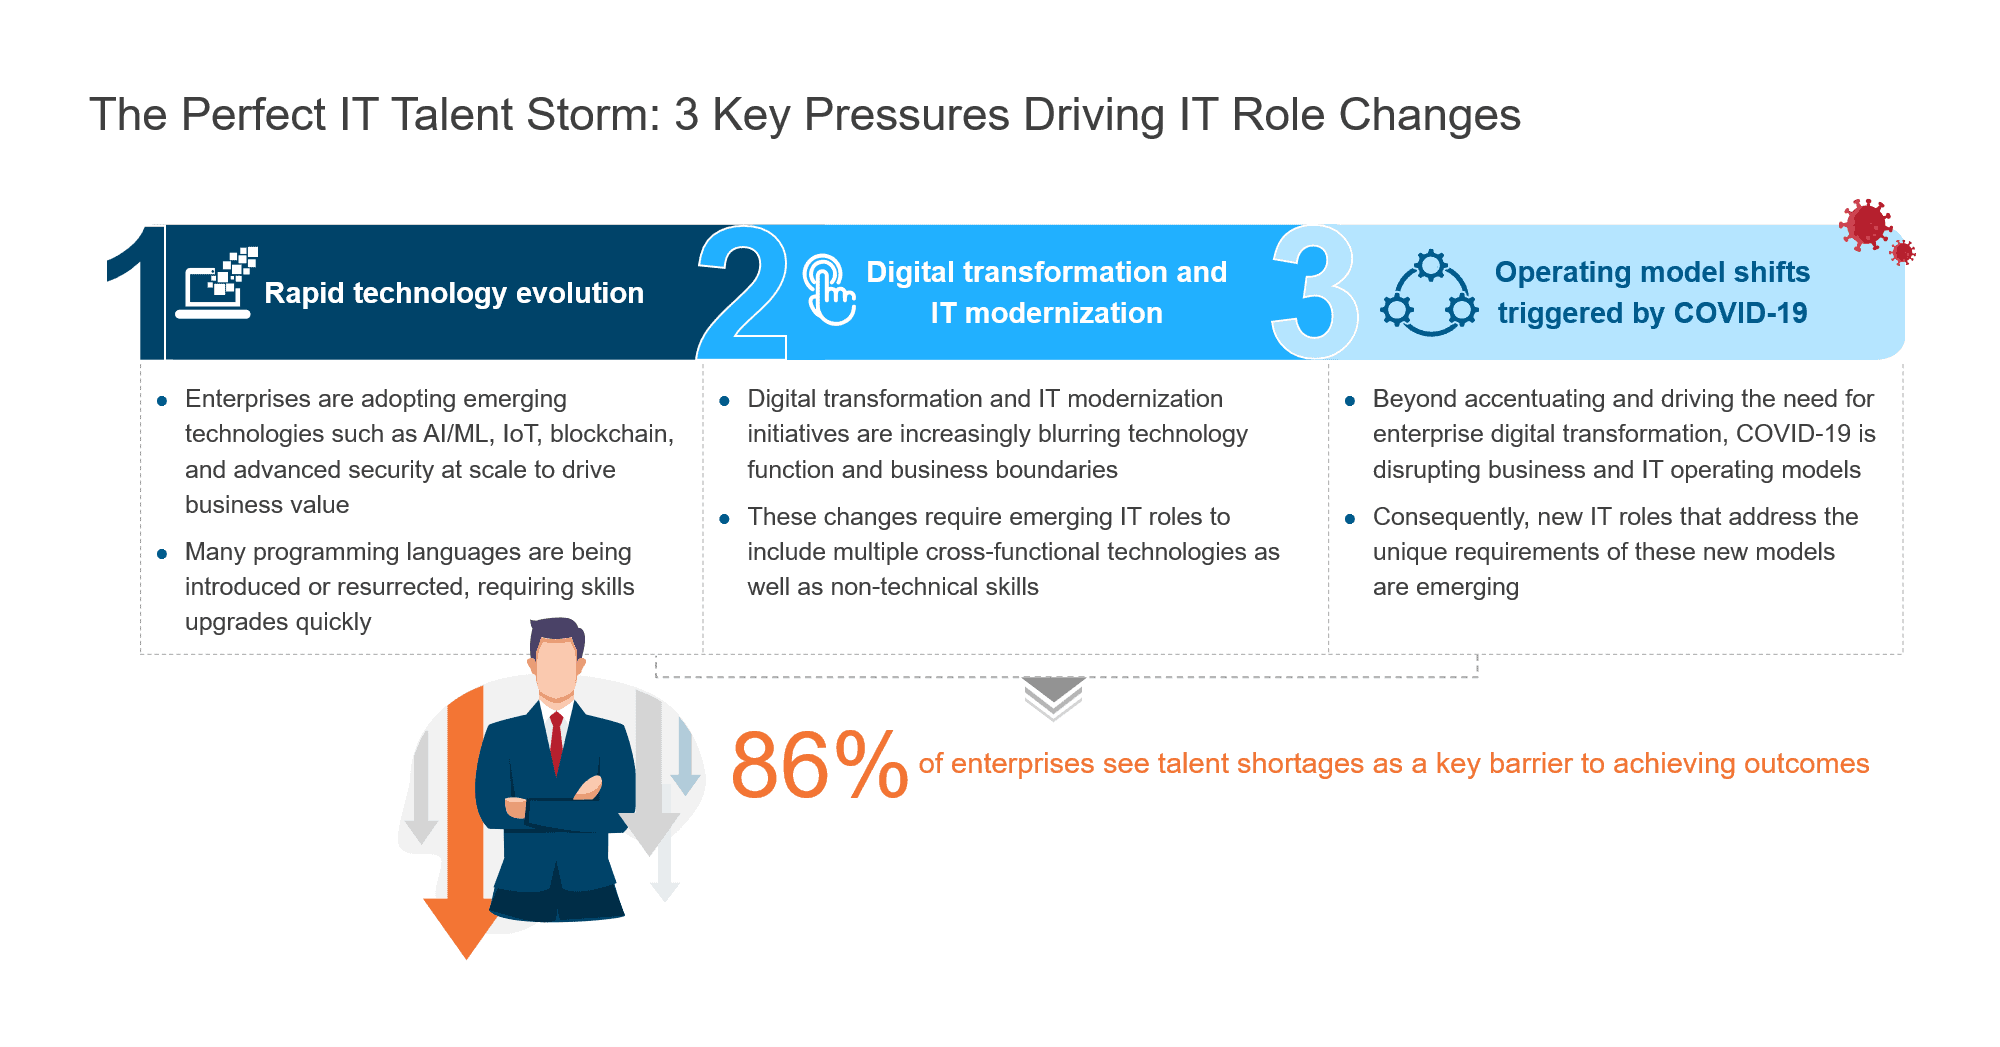 The Perfect IT Talent Storm - 3 Key Pressures Driving IT Role Changes